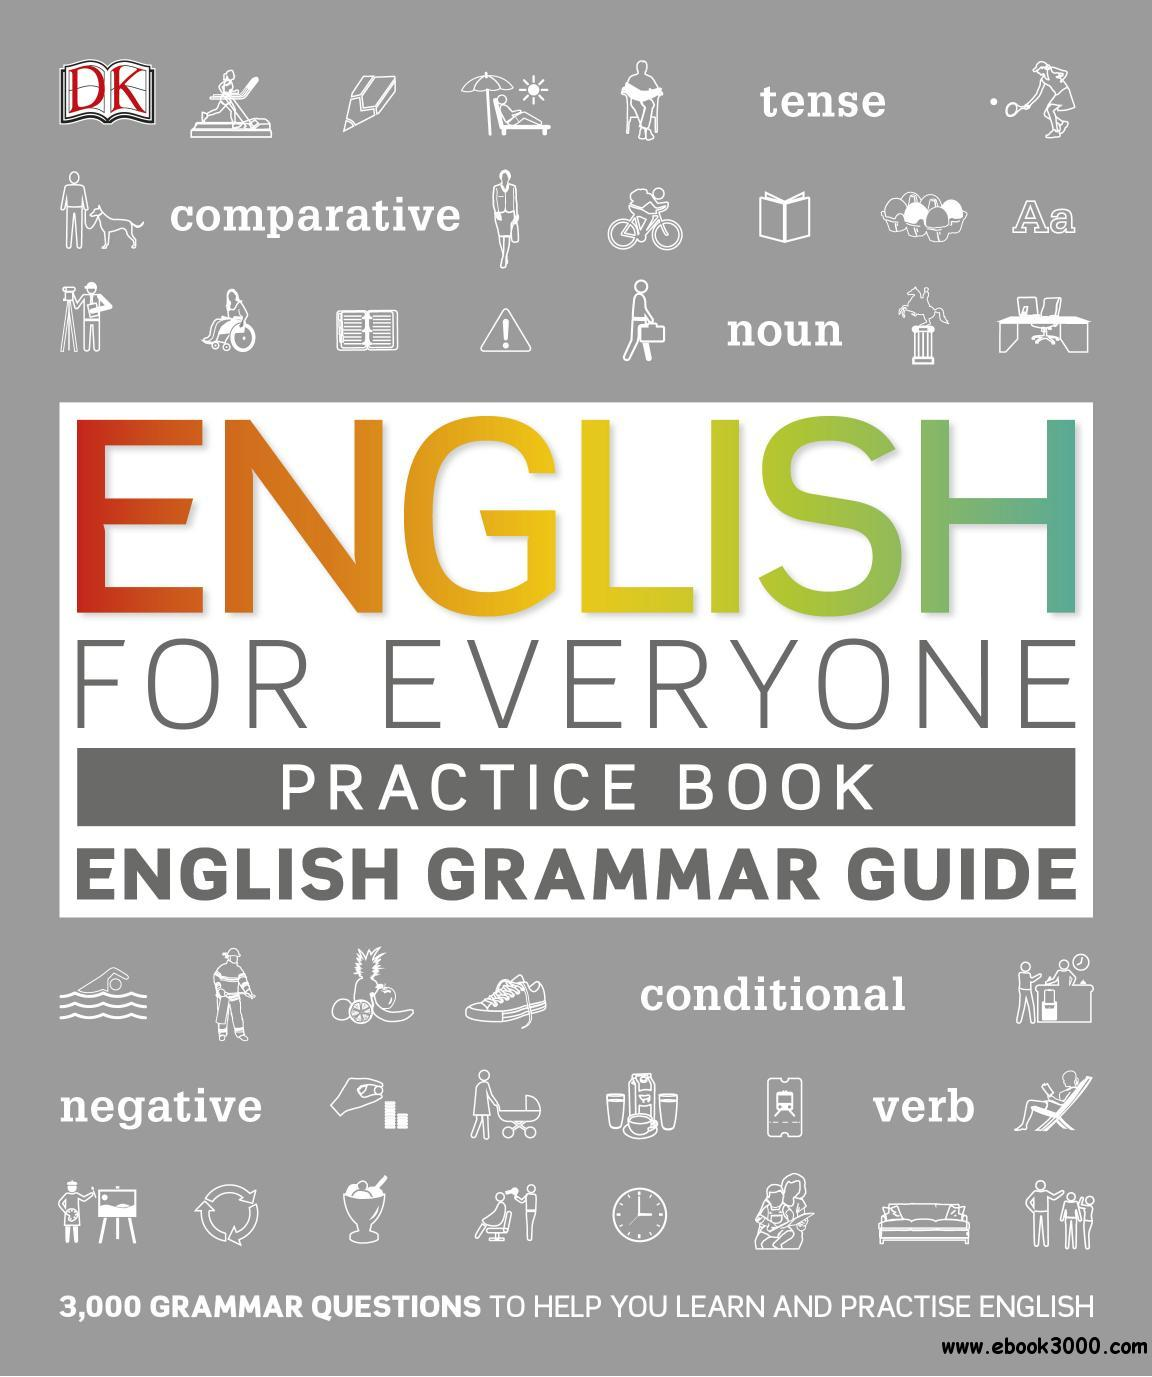 English for Everyone English Grammar Guide Practice Book: English language grammar exercises (English for Everyone)